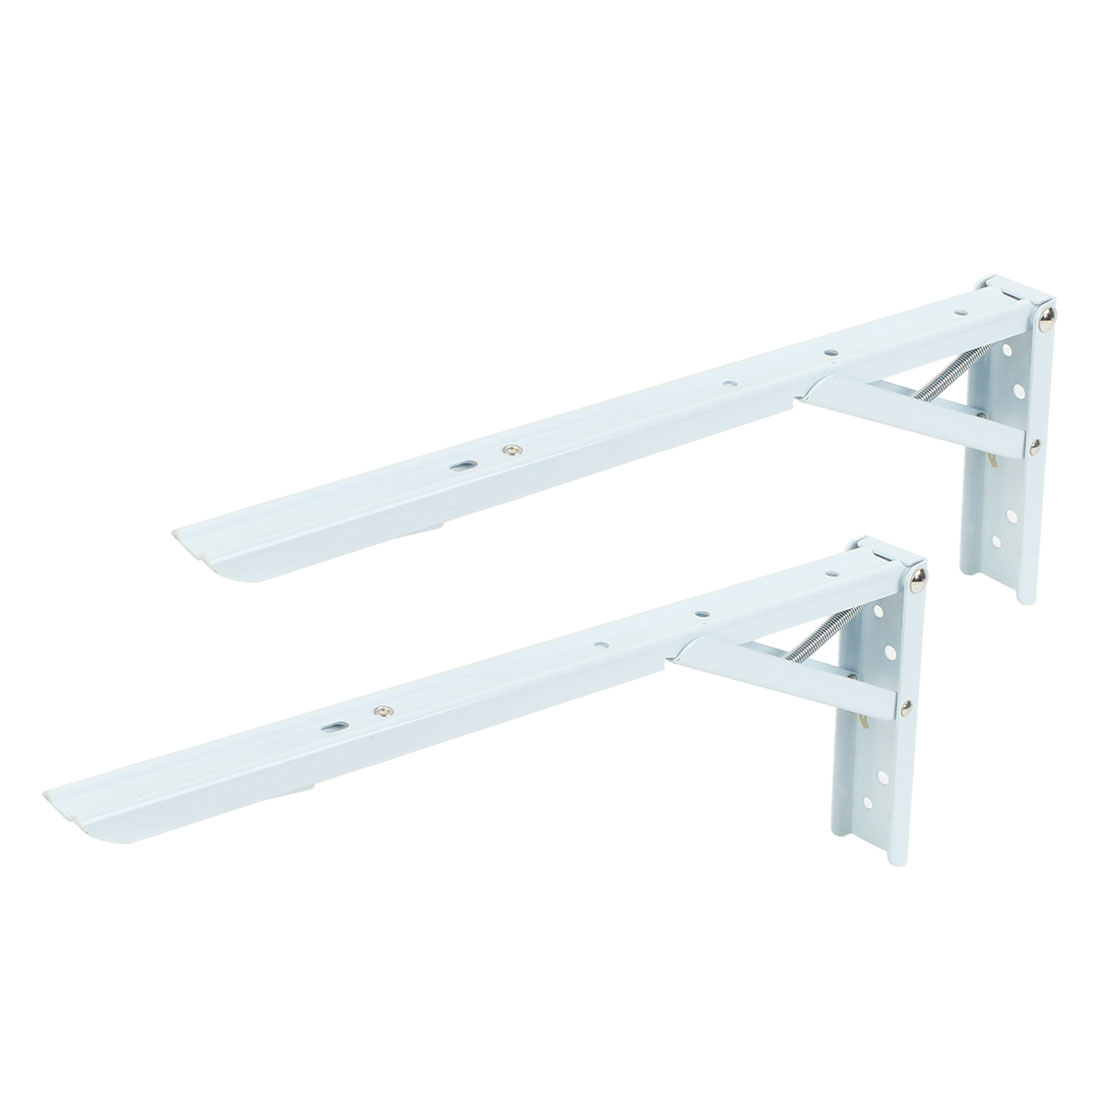 "2 Pcs Wall Mounting 90 Degree Store Shop Foldable Shelf Bracket 14"" x 5.5"""